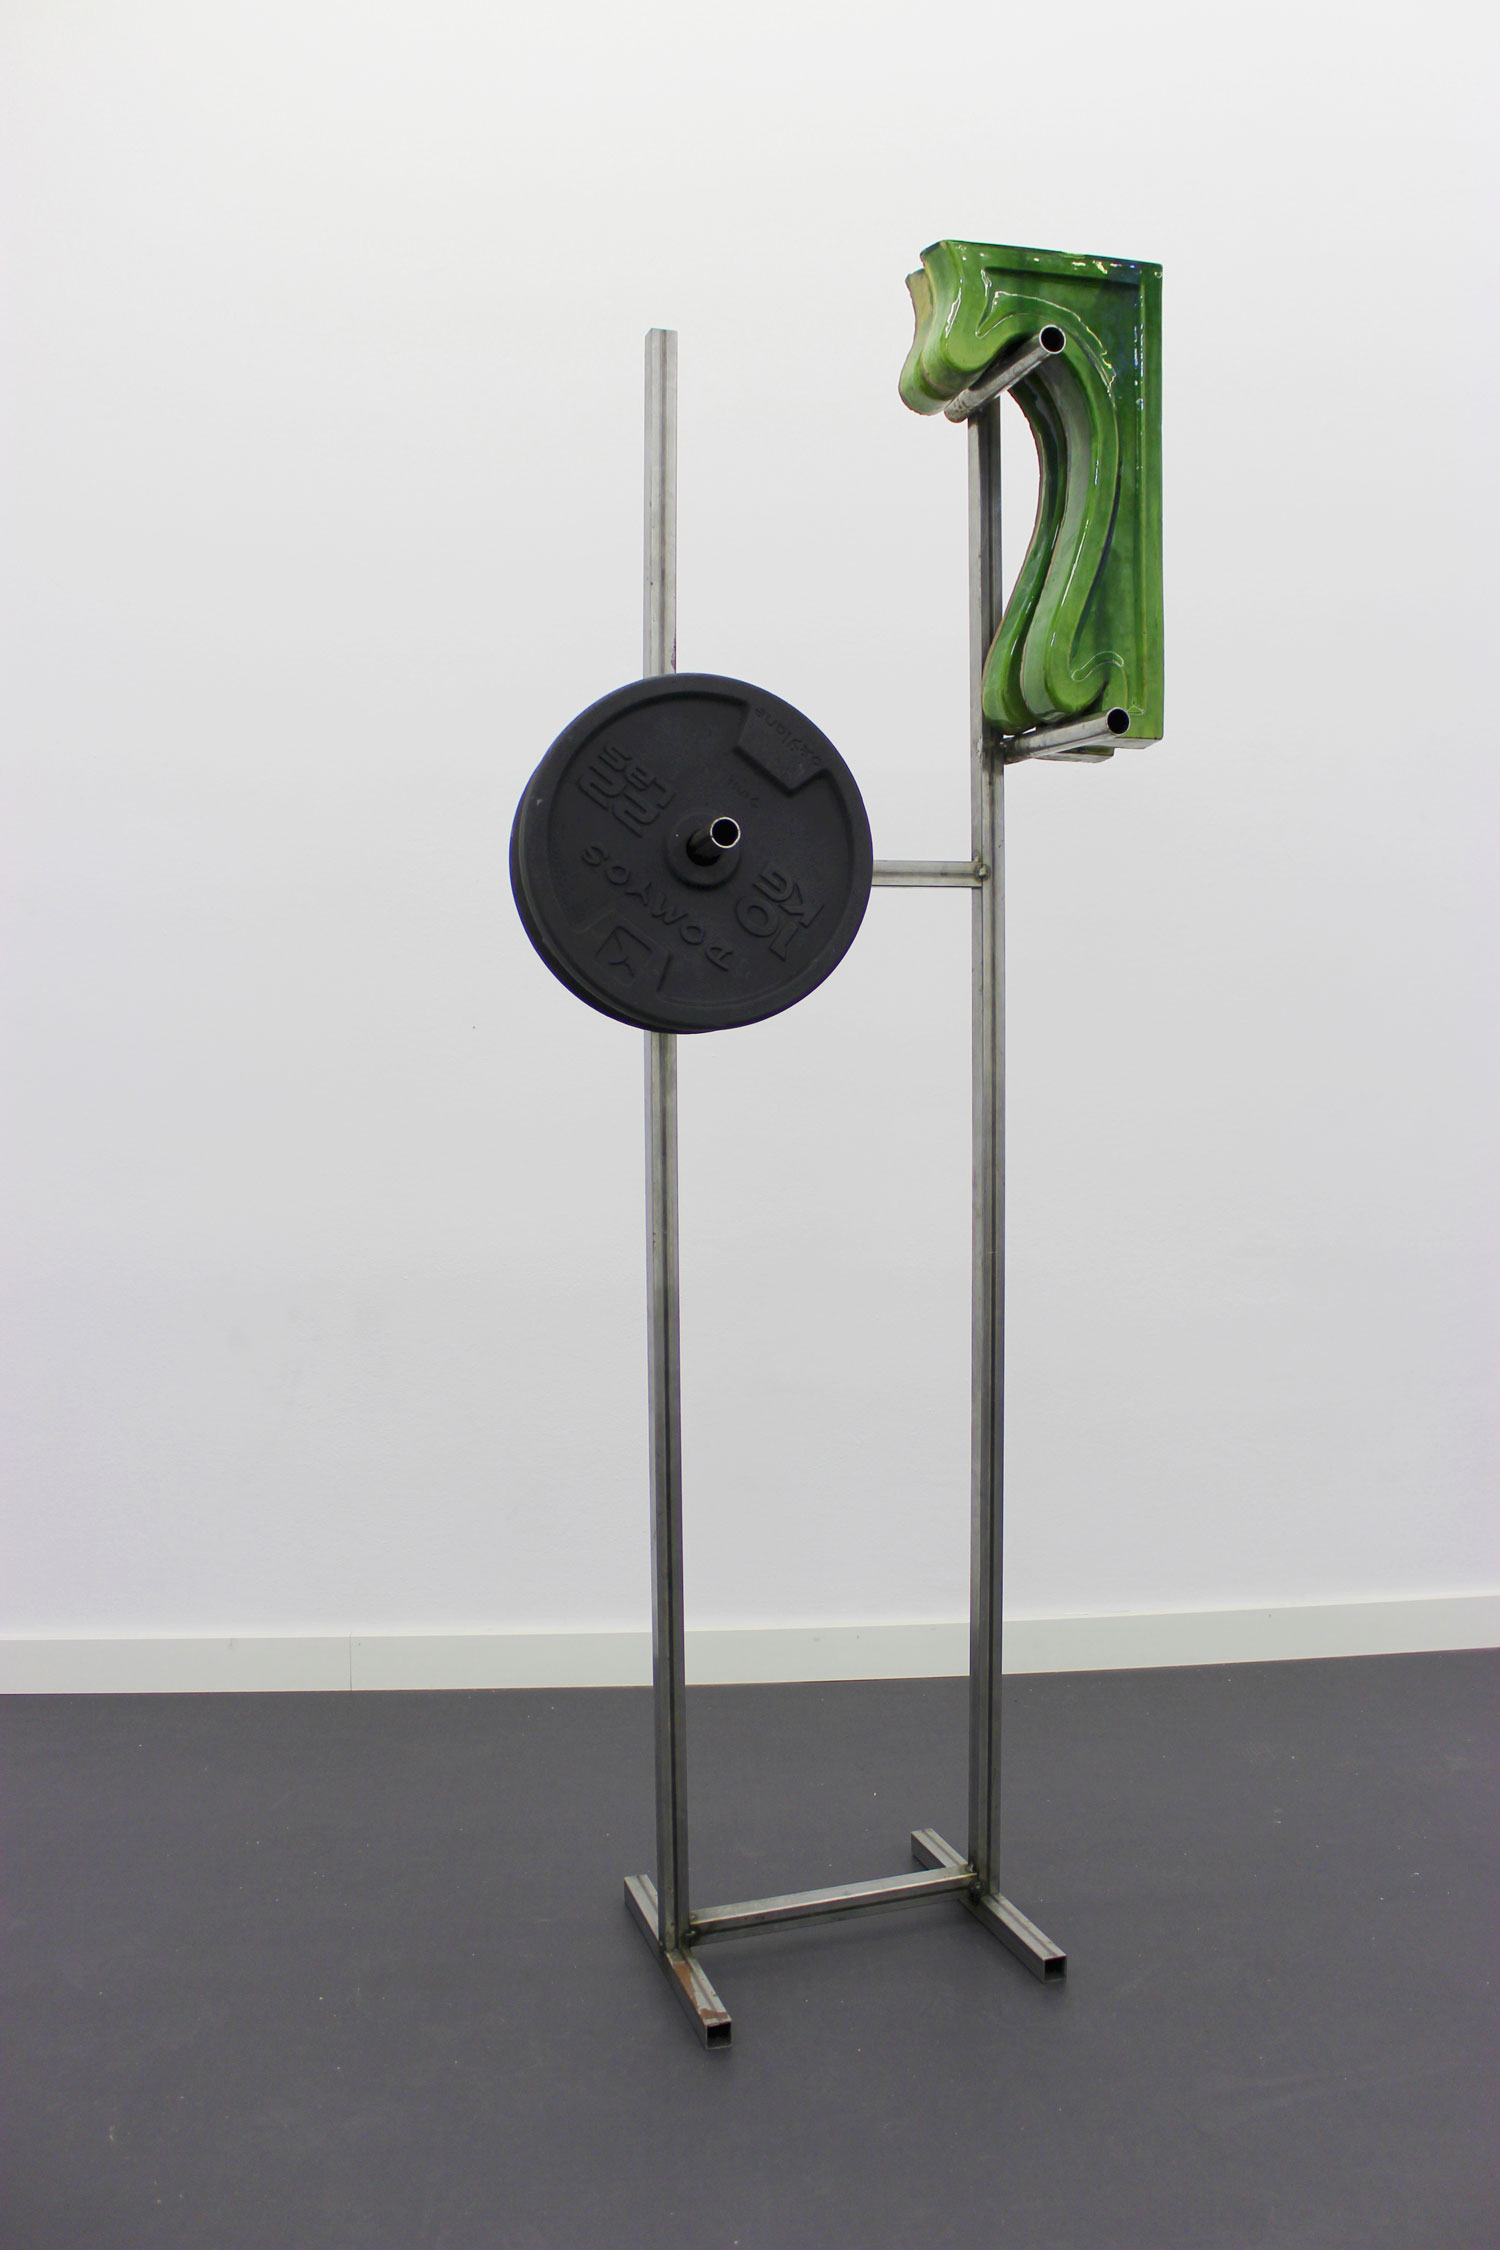 DAVID BESTUÉ  EXPOSITOR 3, 2016 Metal structure with two weights and two modernist ceramic elements / Metallstruktur mit zwei Gewichten and zwei modernistischen Keramikelementen 163,5 × 73 × 33,5 cm Courtesy García Galería, Madrid,  Photo: Roberto Ruiz